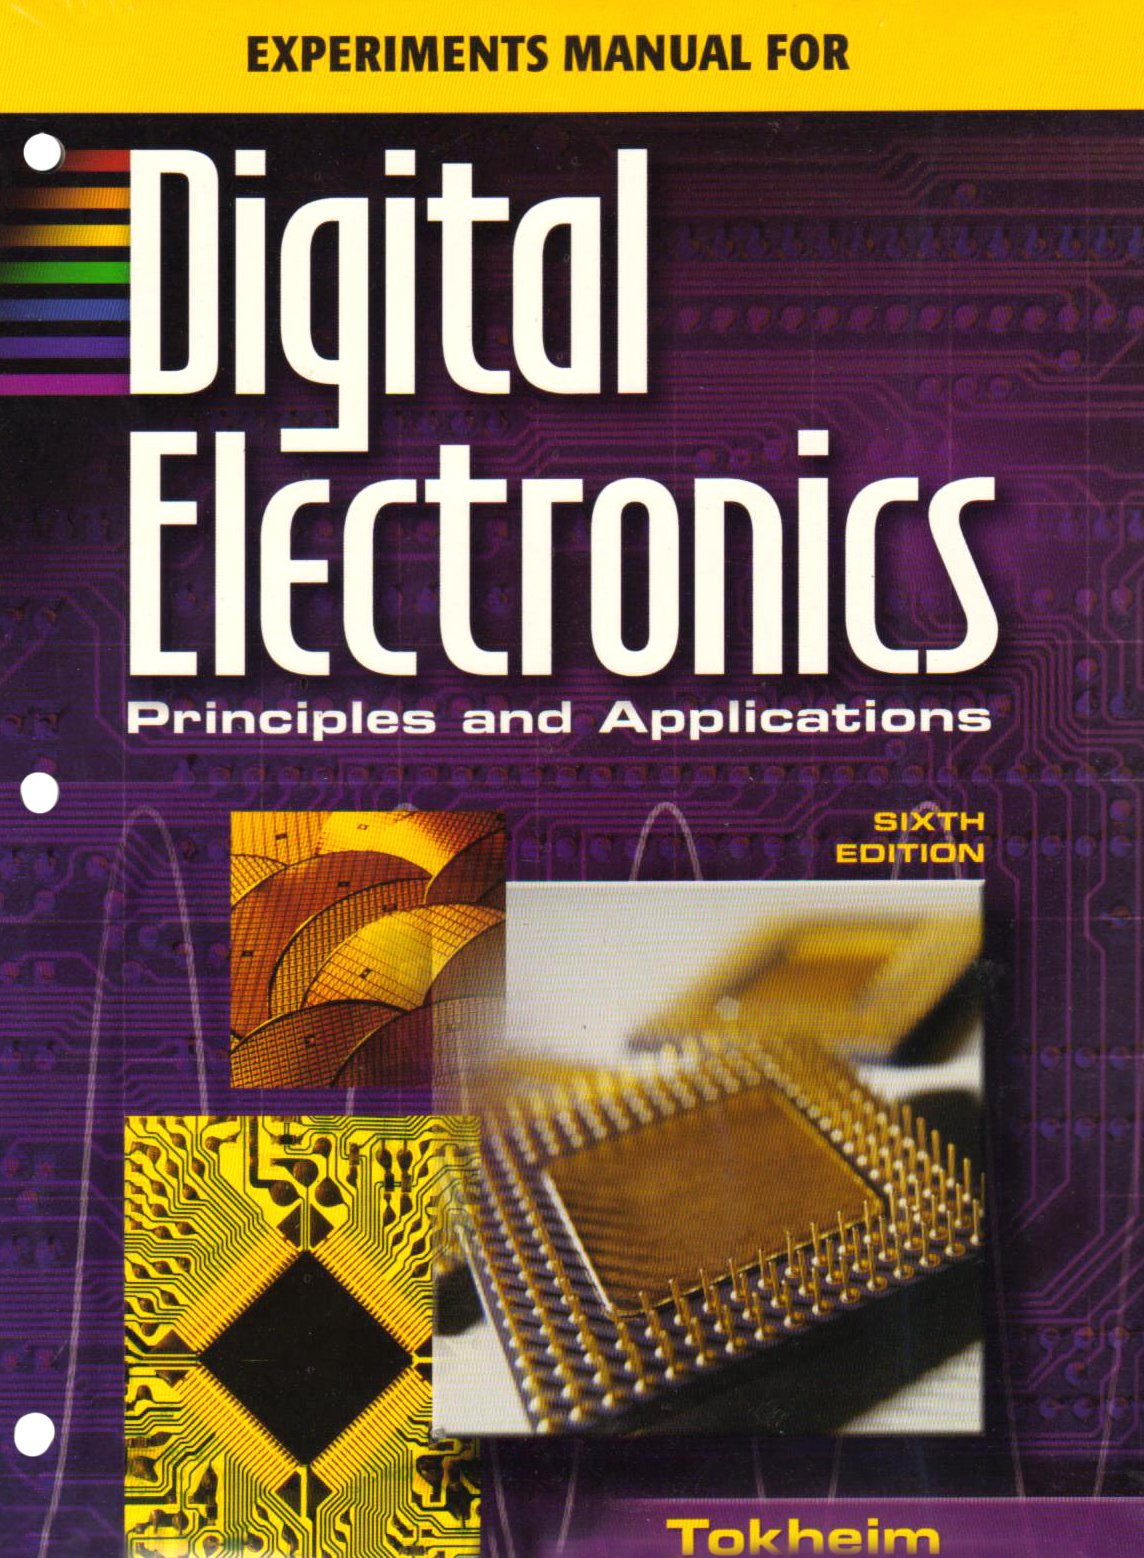 Experiments Manual with MultiSIM CD to accompany Digital Electronics:  Principles & Applications: Roger Tokheim: 9780078309830: Books - Amazon.ca